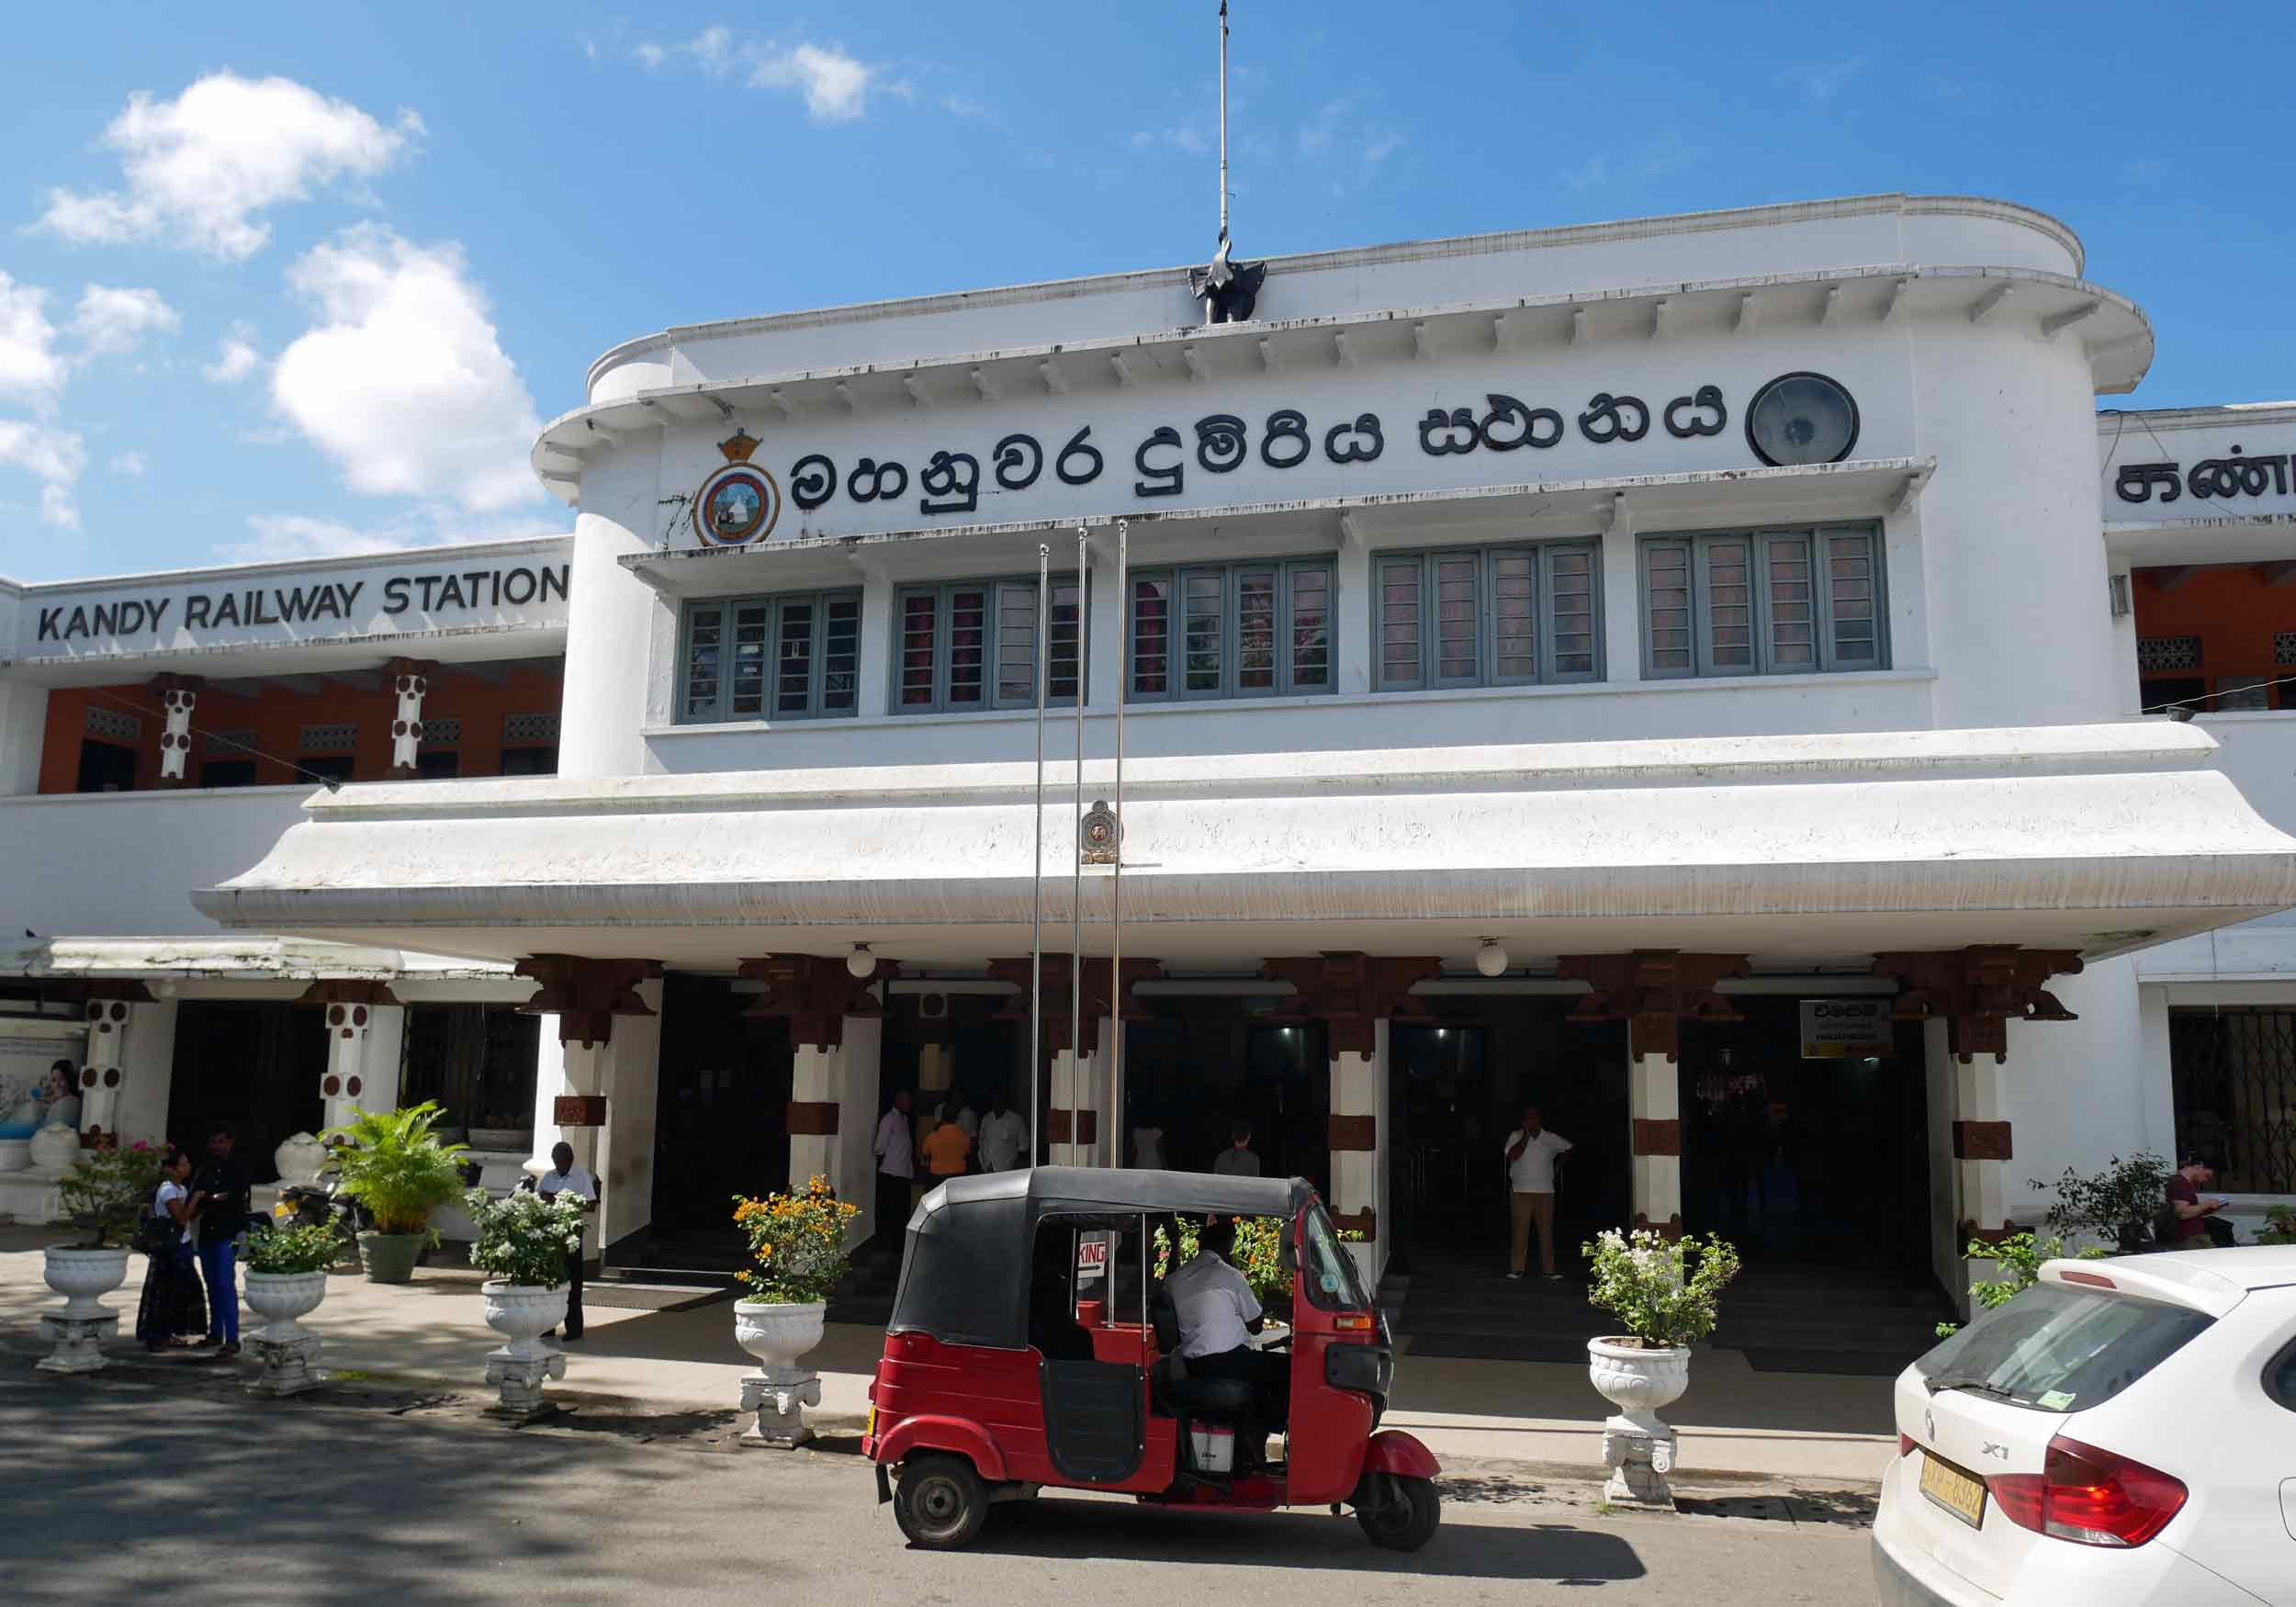 Our first Sri Lankan rail journey embarked from the charming Art Deco Kandy Railway station (Dec 15).